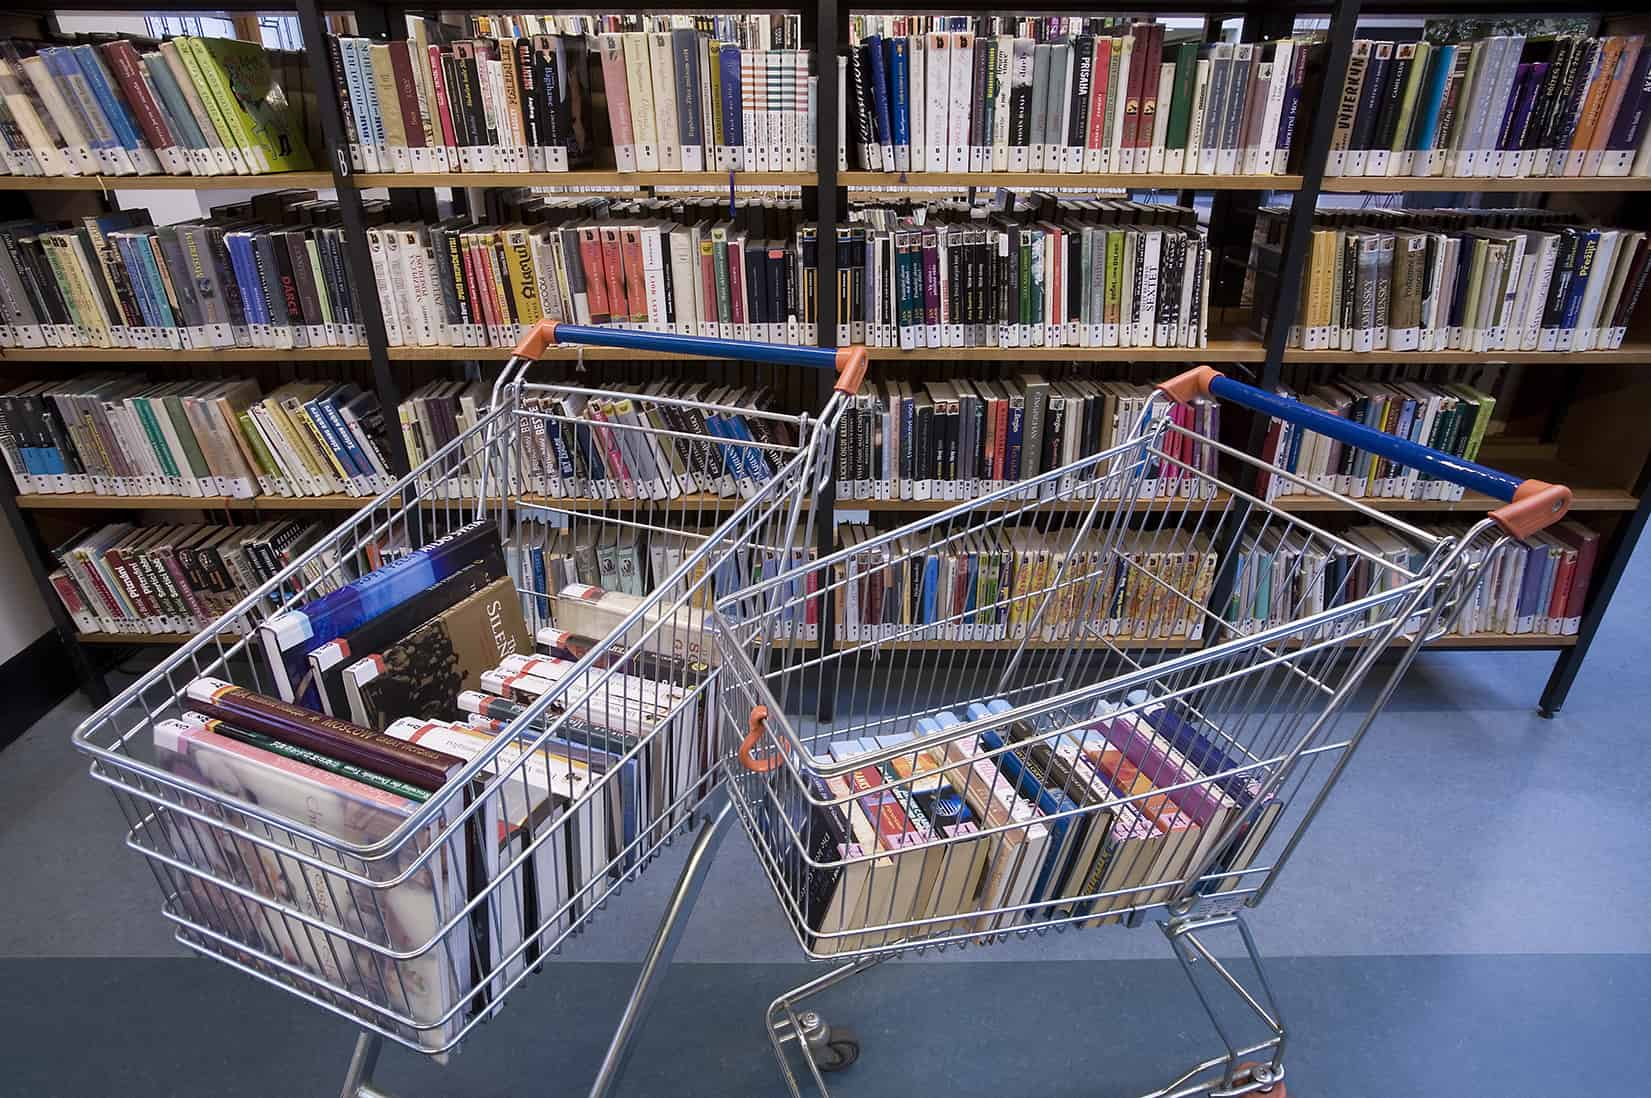 Surging Demand of Iranian Users for Online Book Shopping